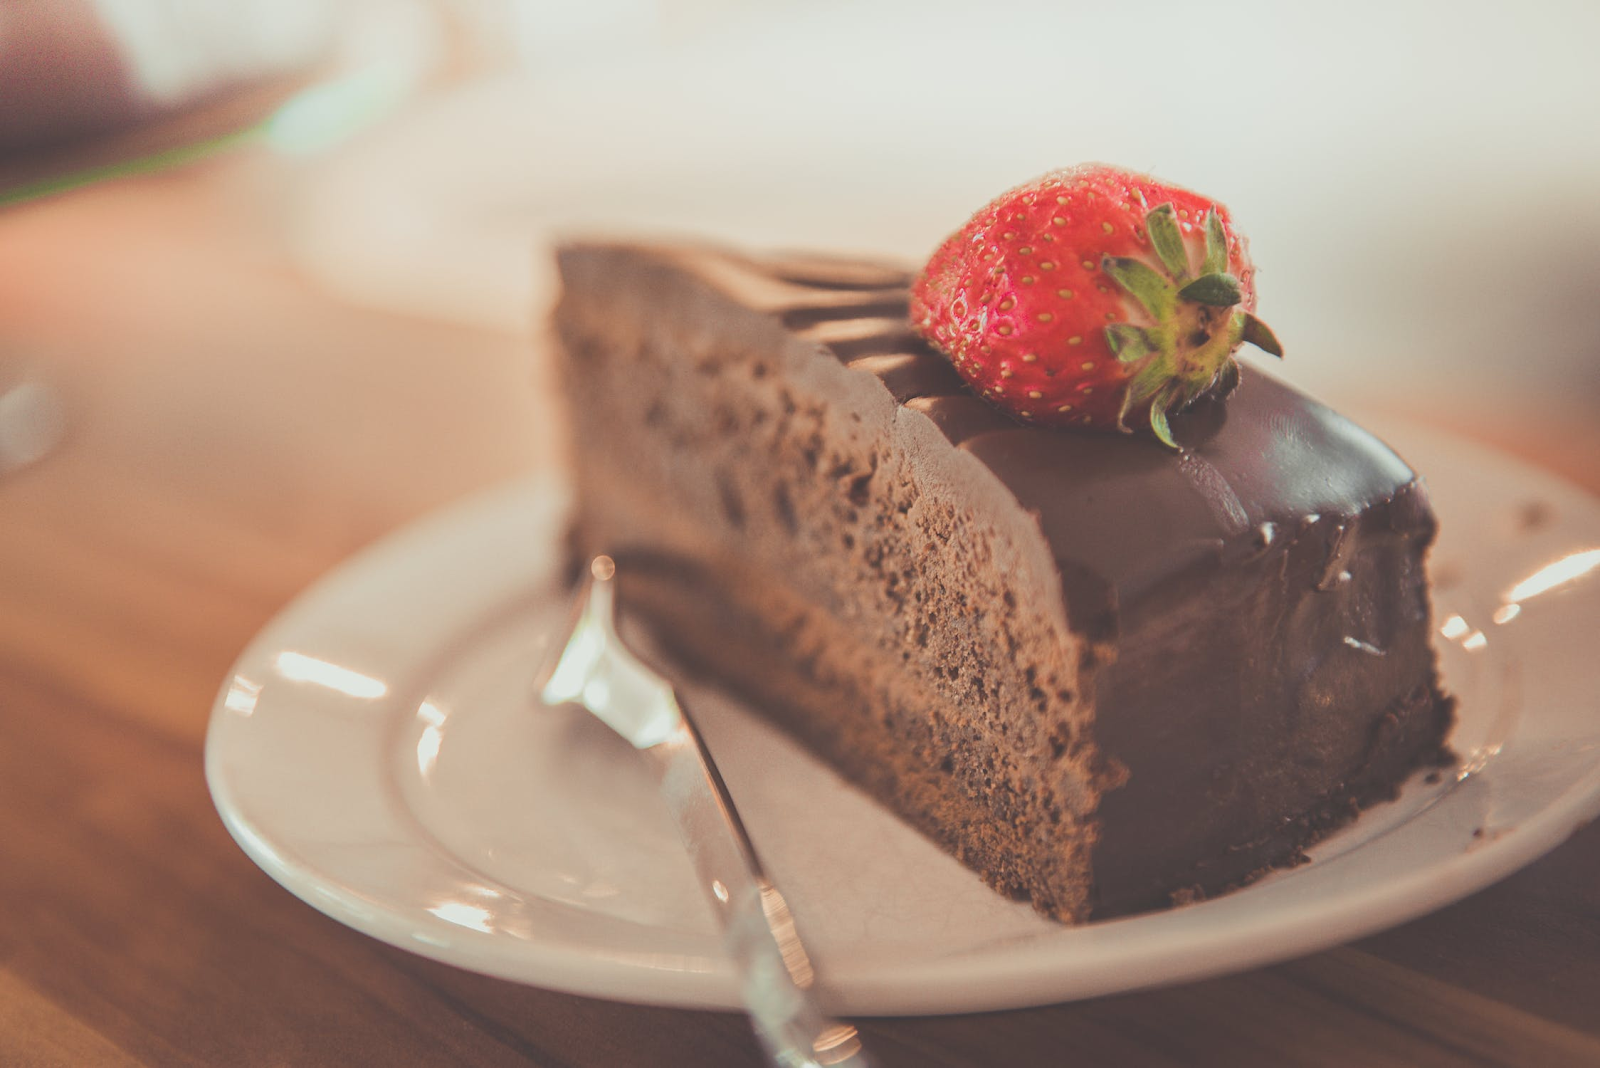 Chocolate cake slice with strawberry on top